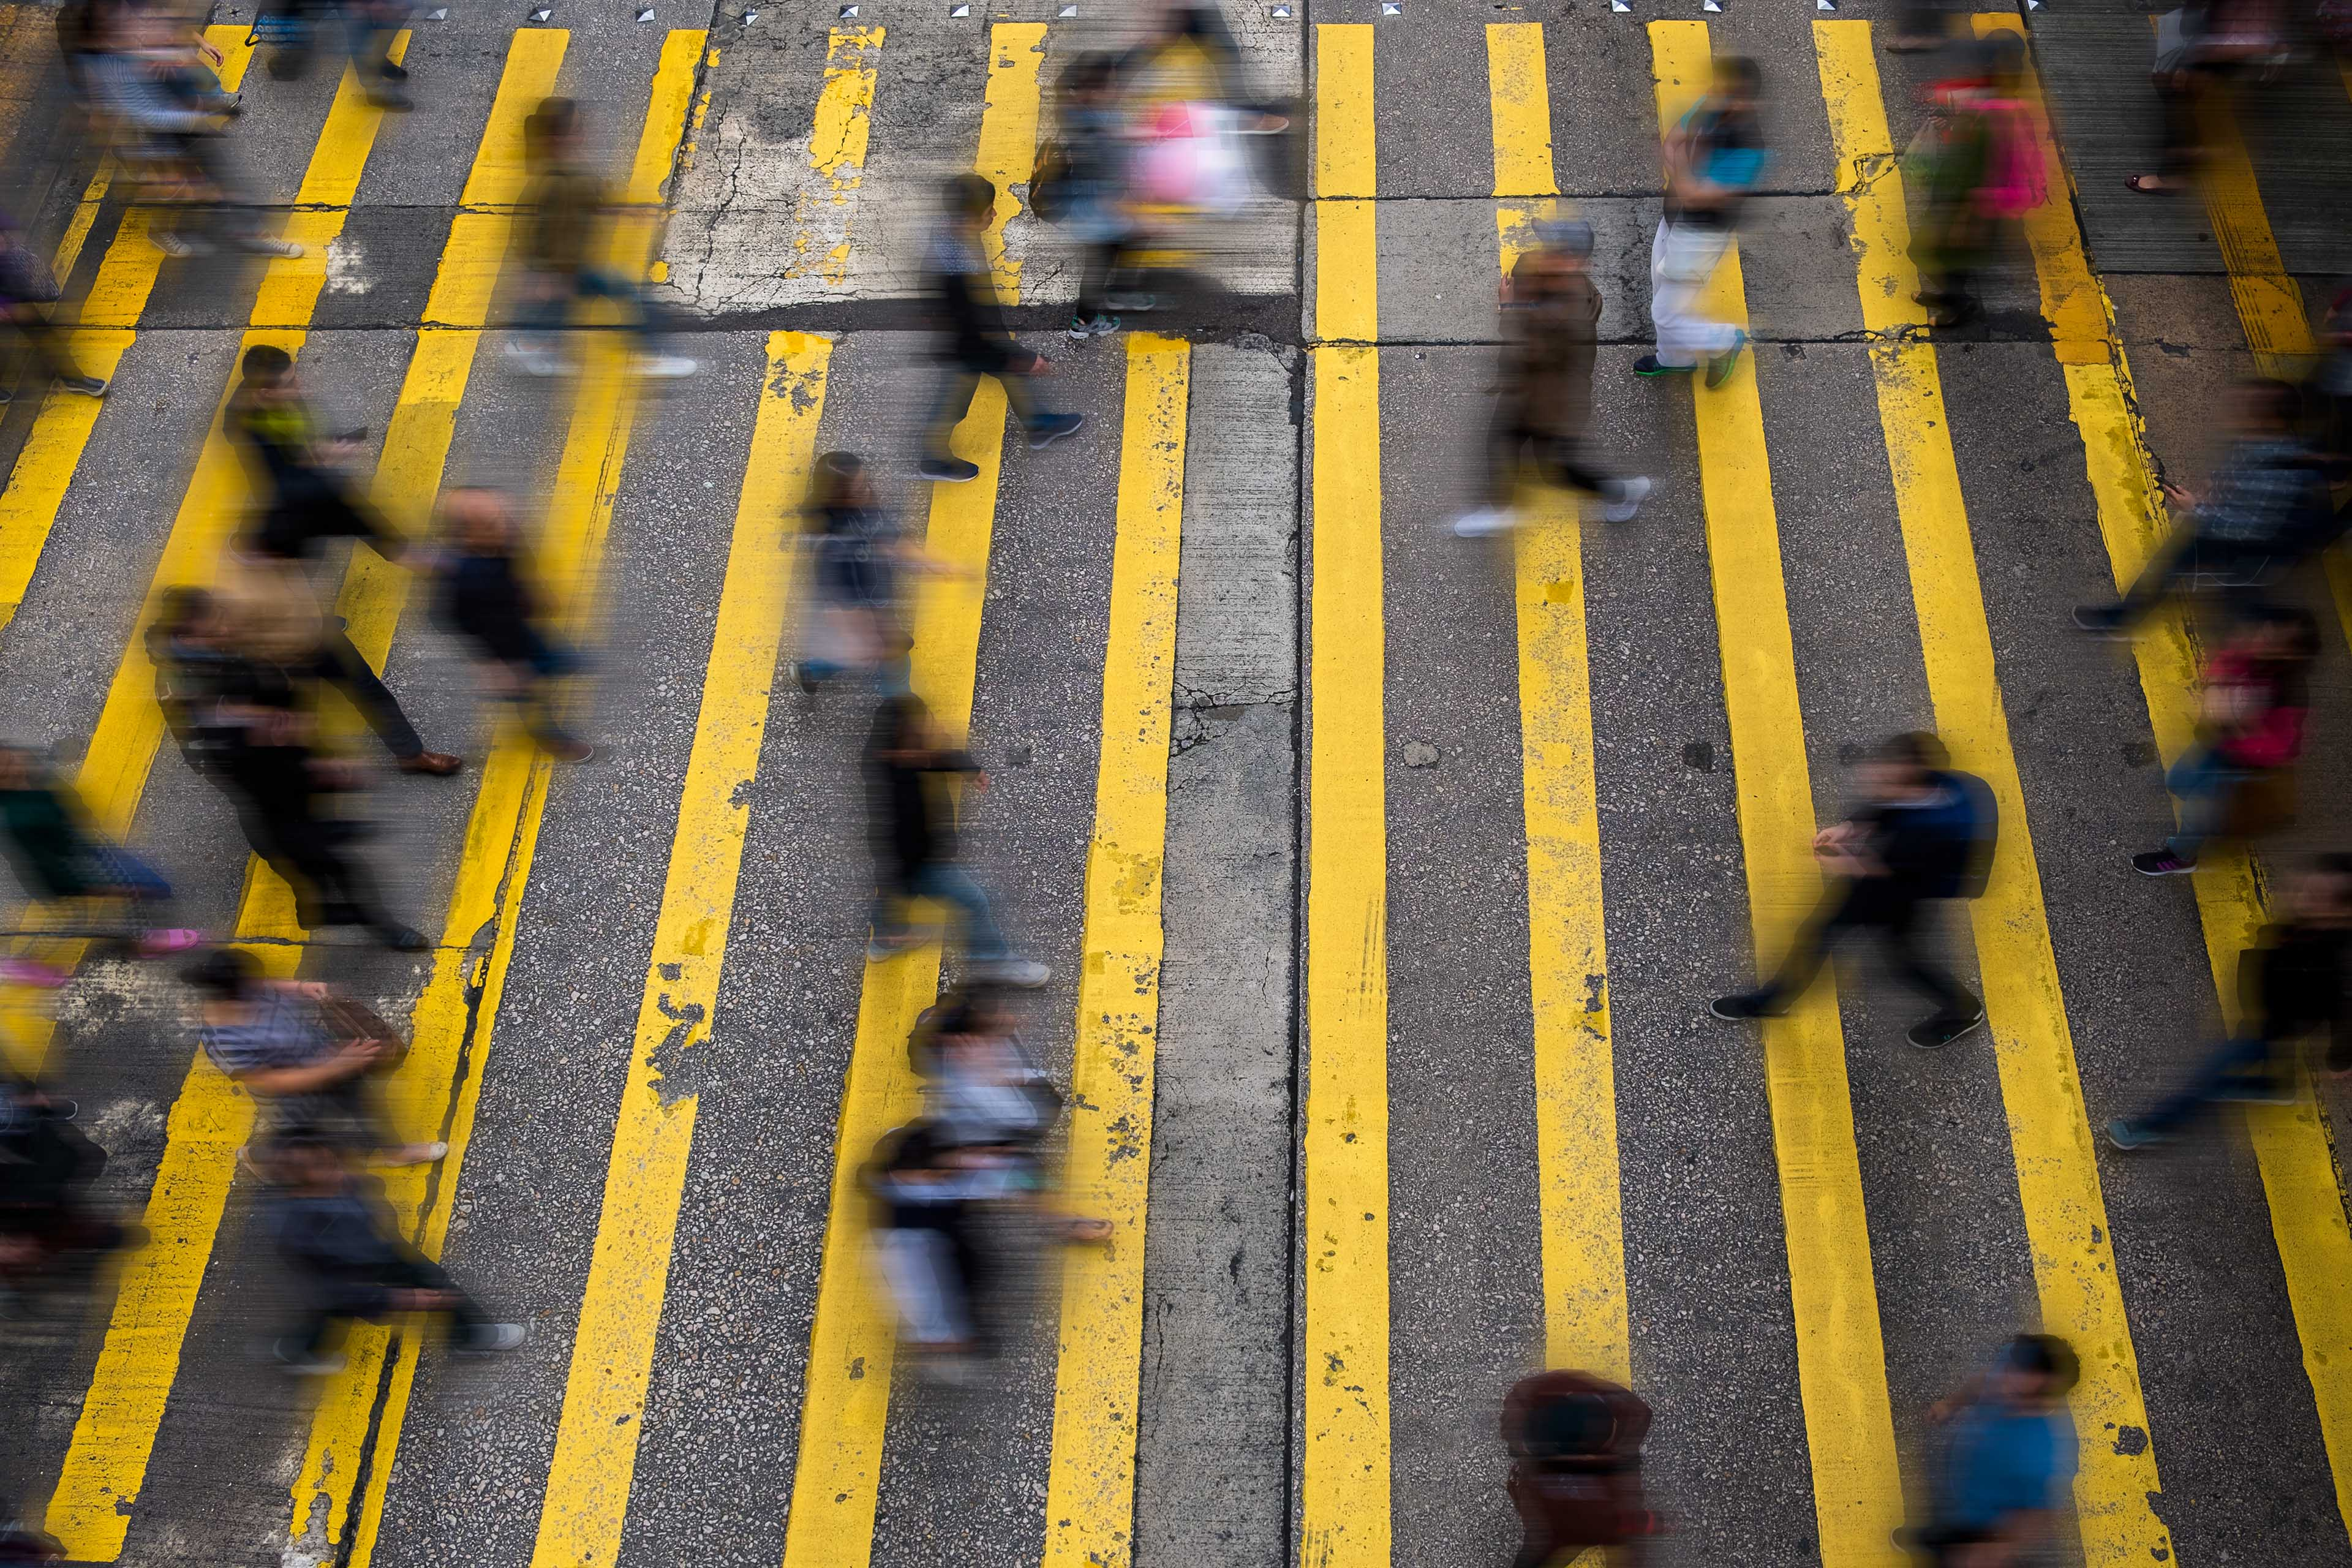 EY announces the appointment of new Global Financial Services leadership for Banking & Capital Markets, and Insurance